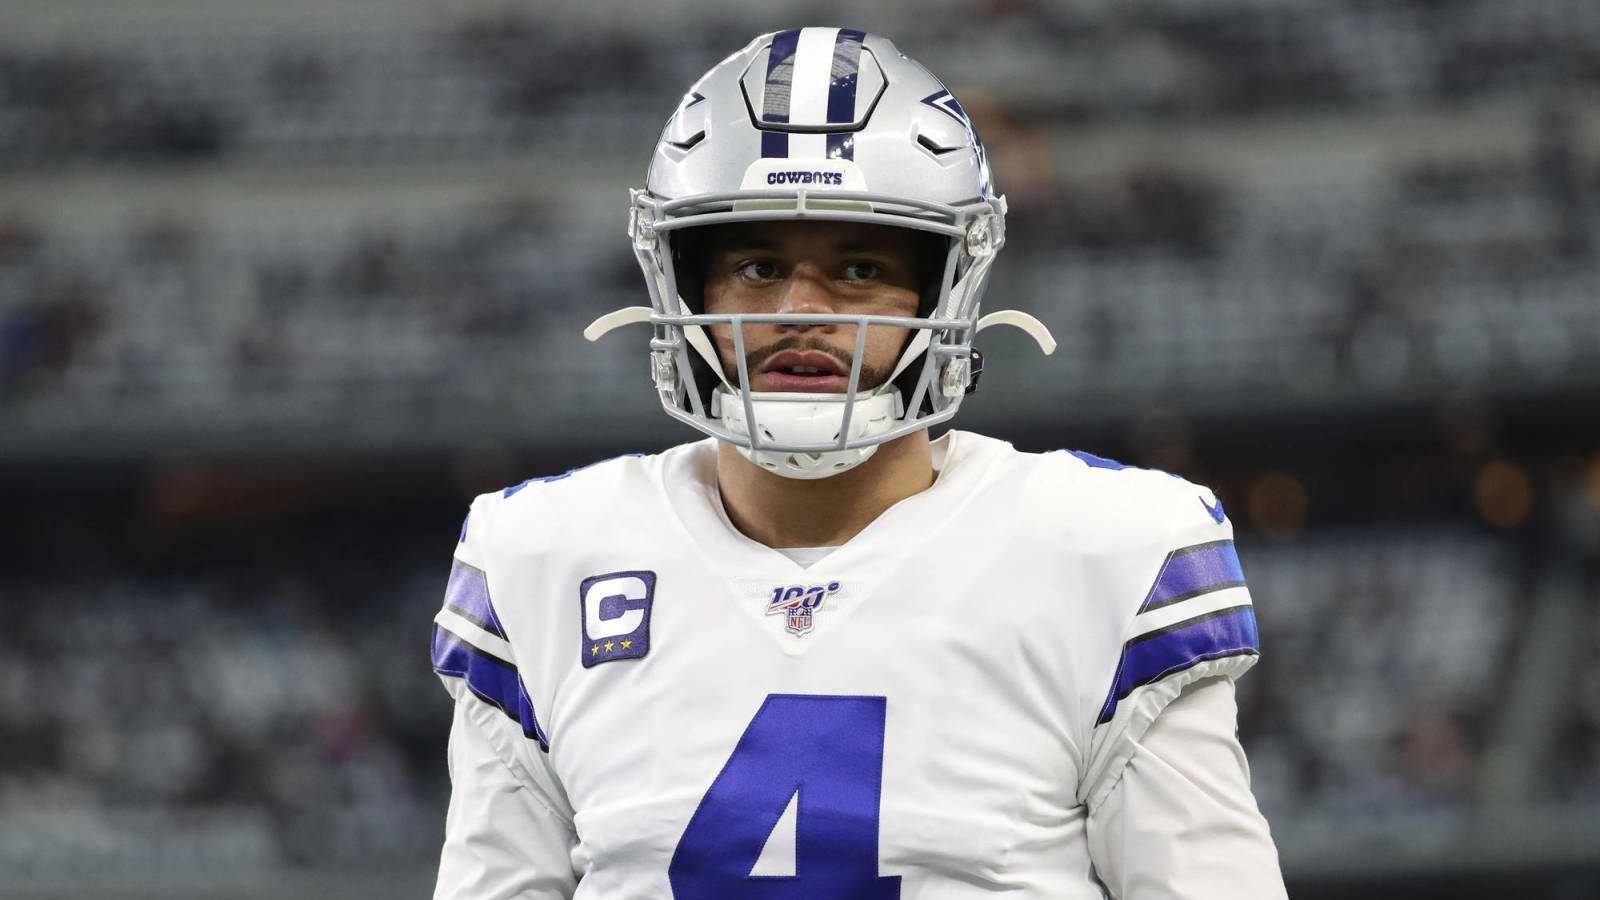 Report: No 'earnest' negotiations between Prescott, Cowboys for 'several' months